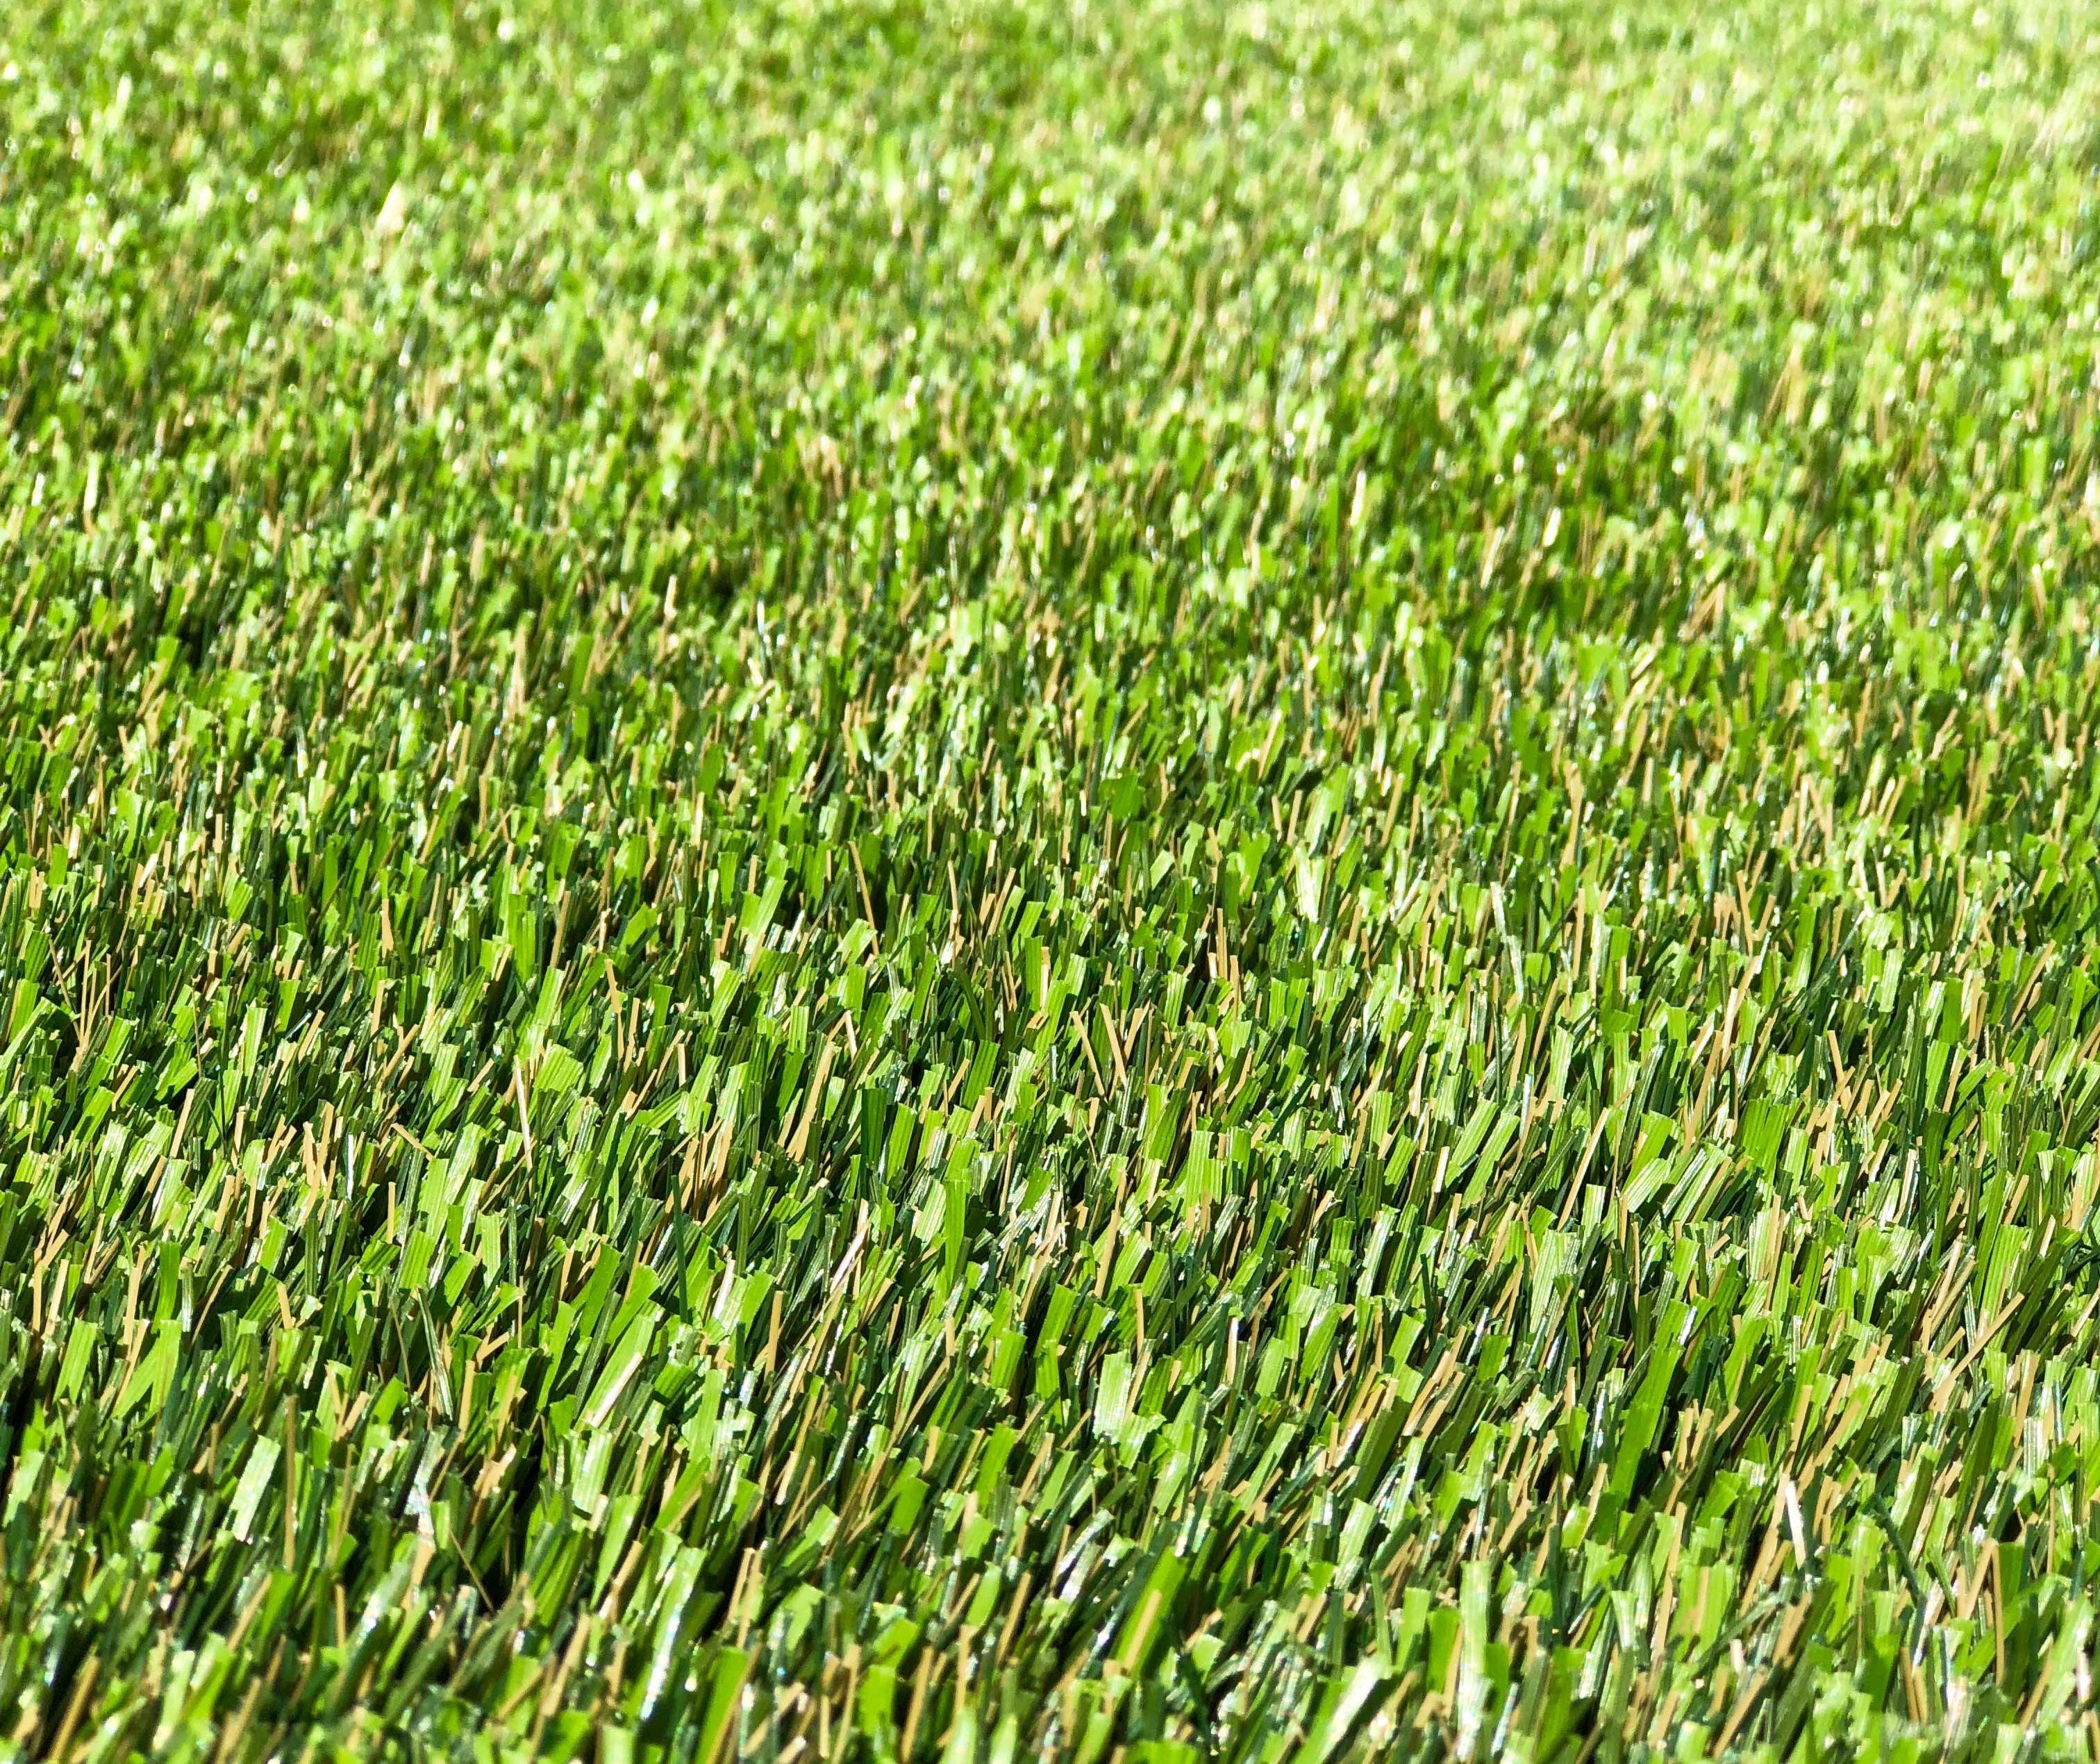 Featuring Super Natural 80 Synthetic Turf